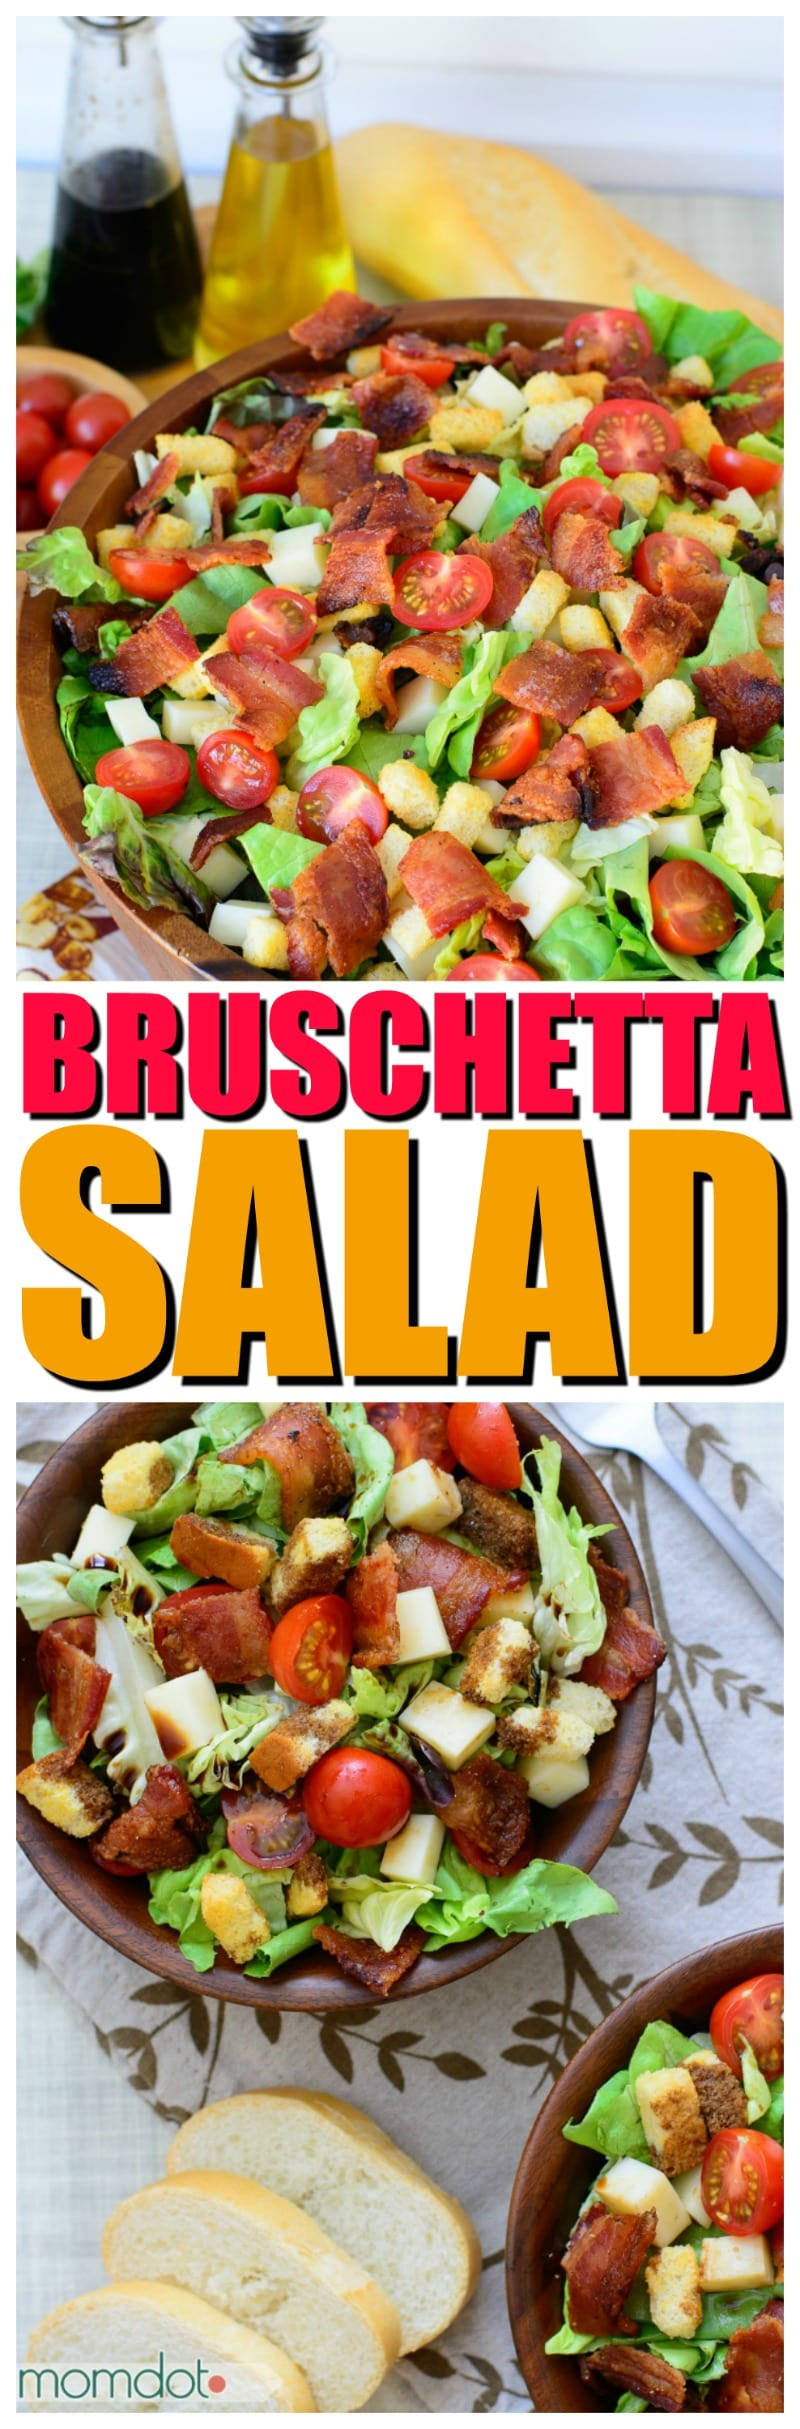 Bruschetta salad : Easy Delicious Veggie Dinner or Side dish Option | Best Salad Option | #salad #recipes #saladbowl #saladrecipes